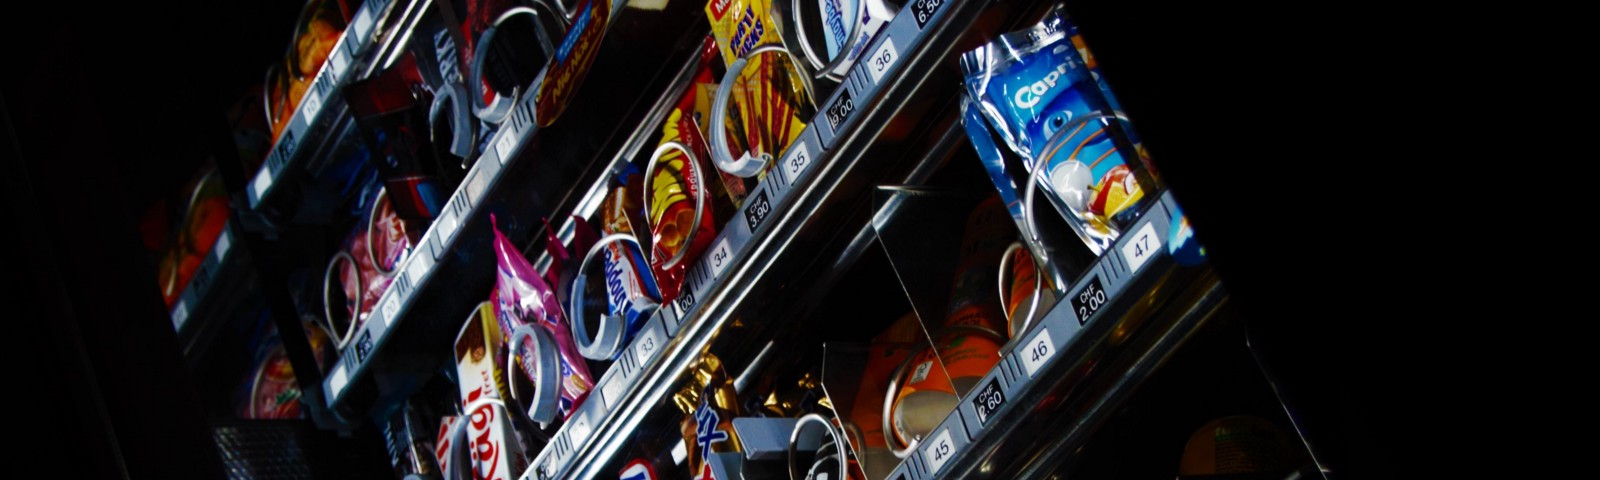 The Vending Machine Murders: How 12 people were indiscriminately poisoned throughout Japan